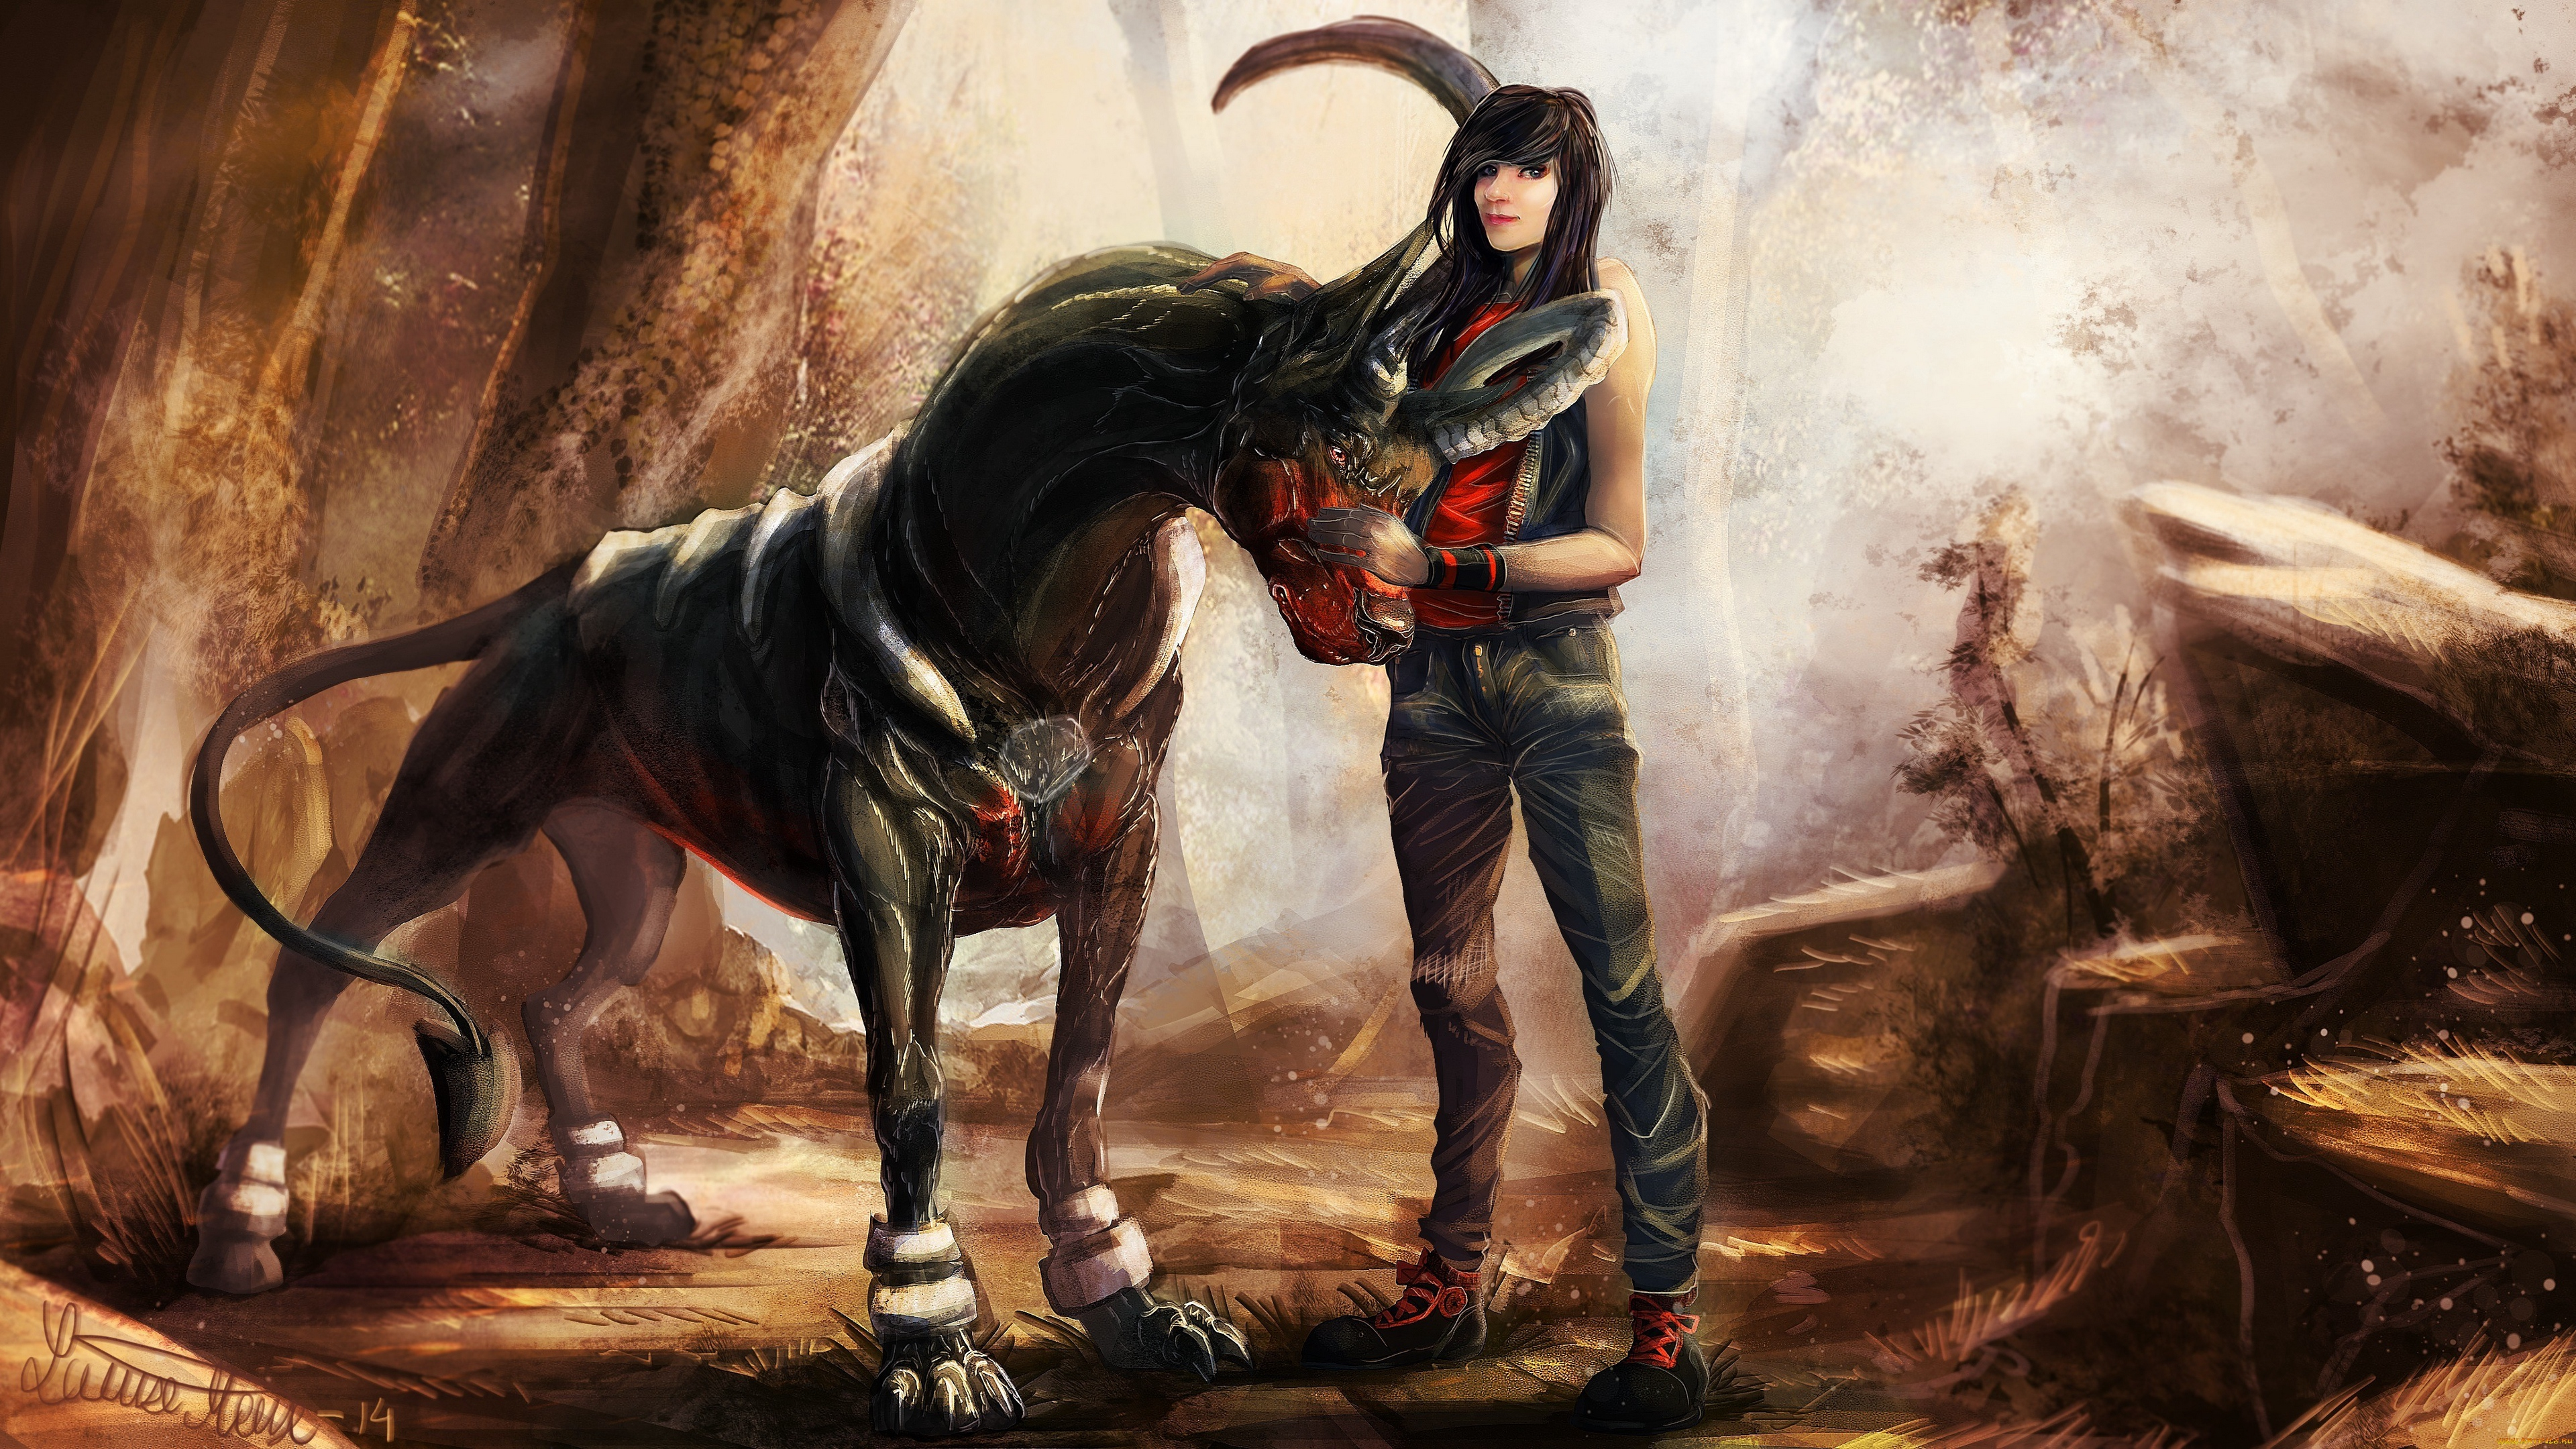 creature dog houndoom pokemon girl 4k 1541975754 - creature dog, houndoom, pokemon, girl 4k - pokemon, houndoom, creature dog